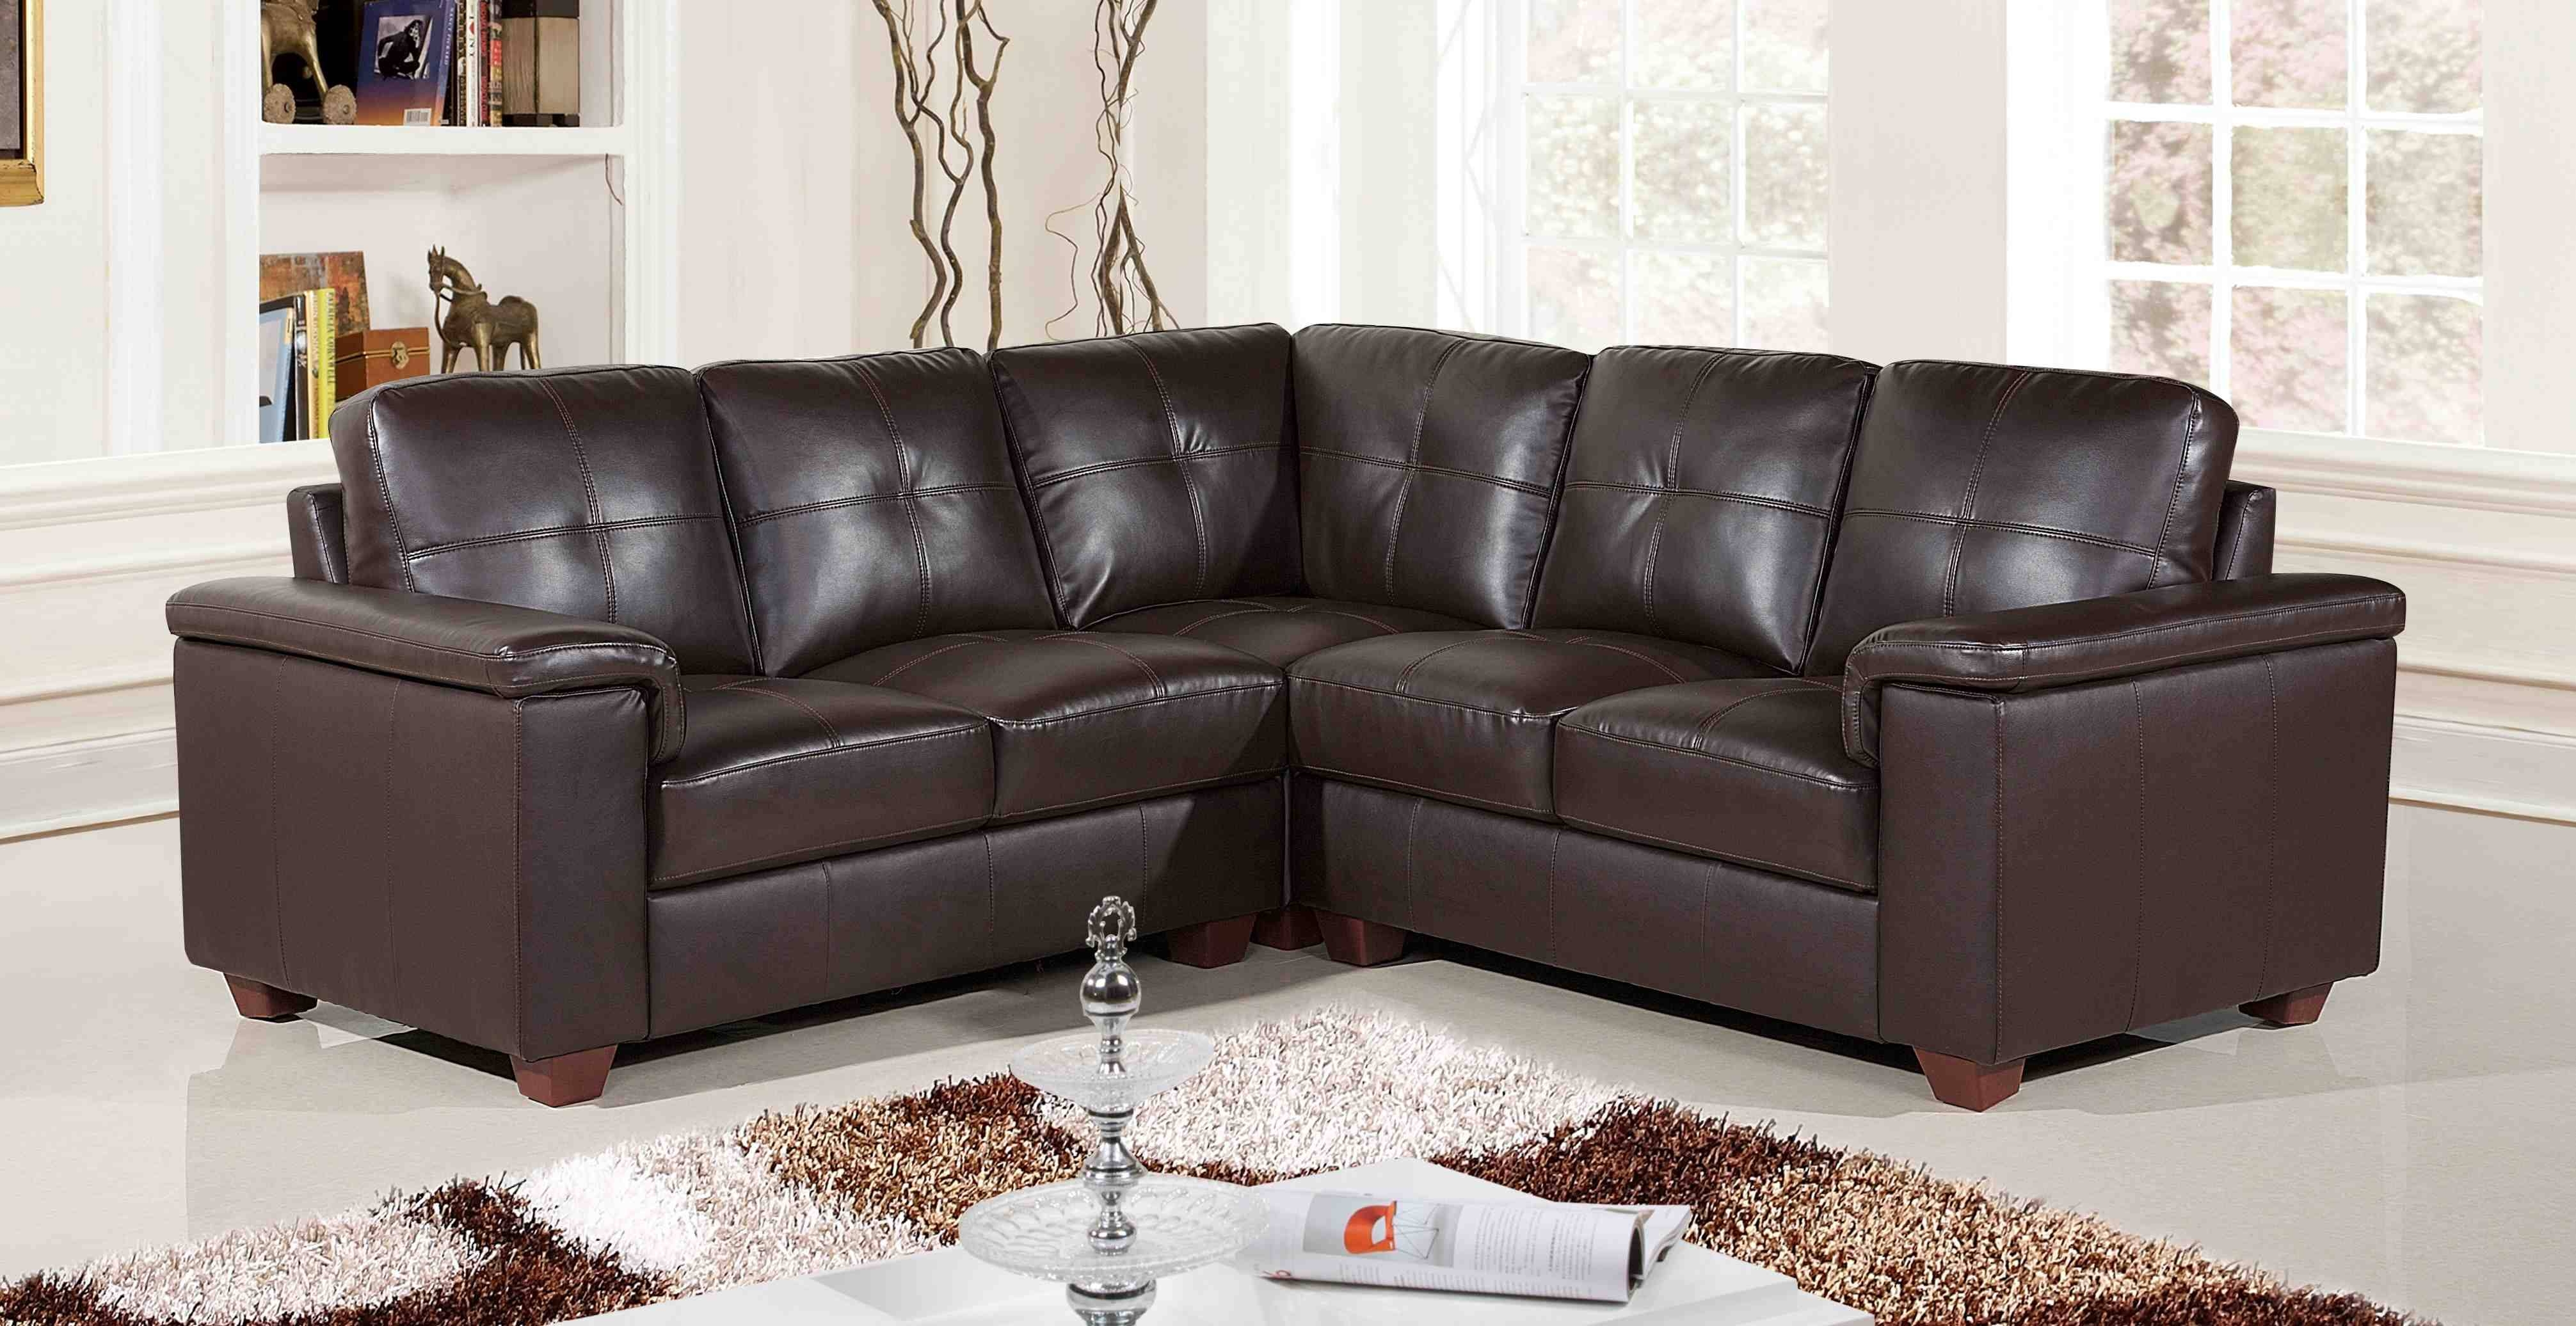 Modern Leather Corner Sofas With Modular Leather Corner Sofa regarding Large Black Leather Corner Sofas (Image 20 of 30)